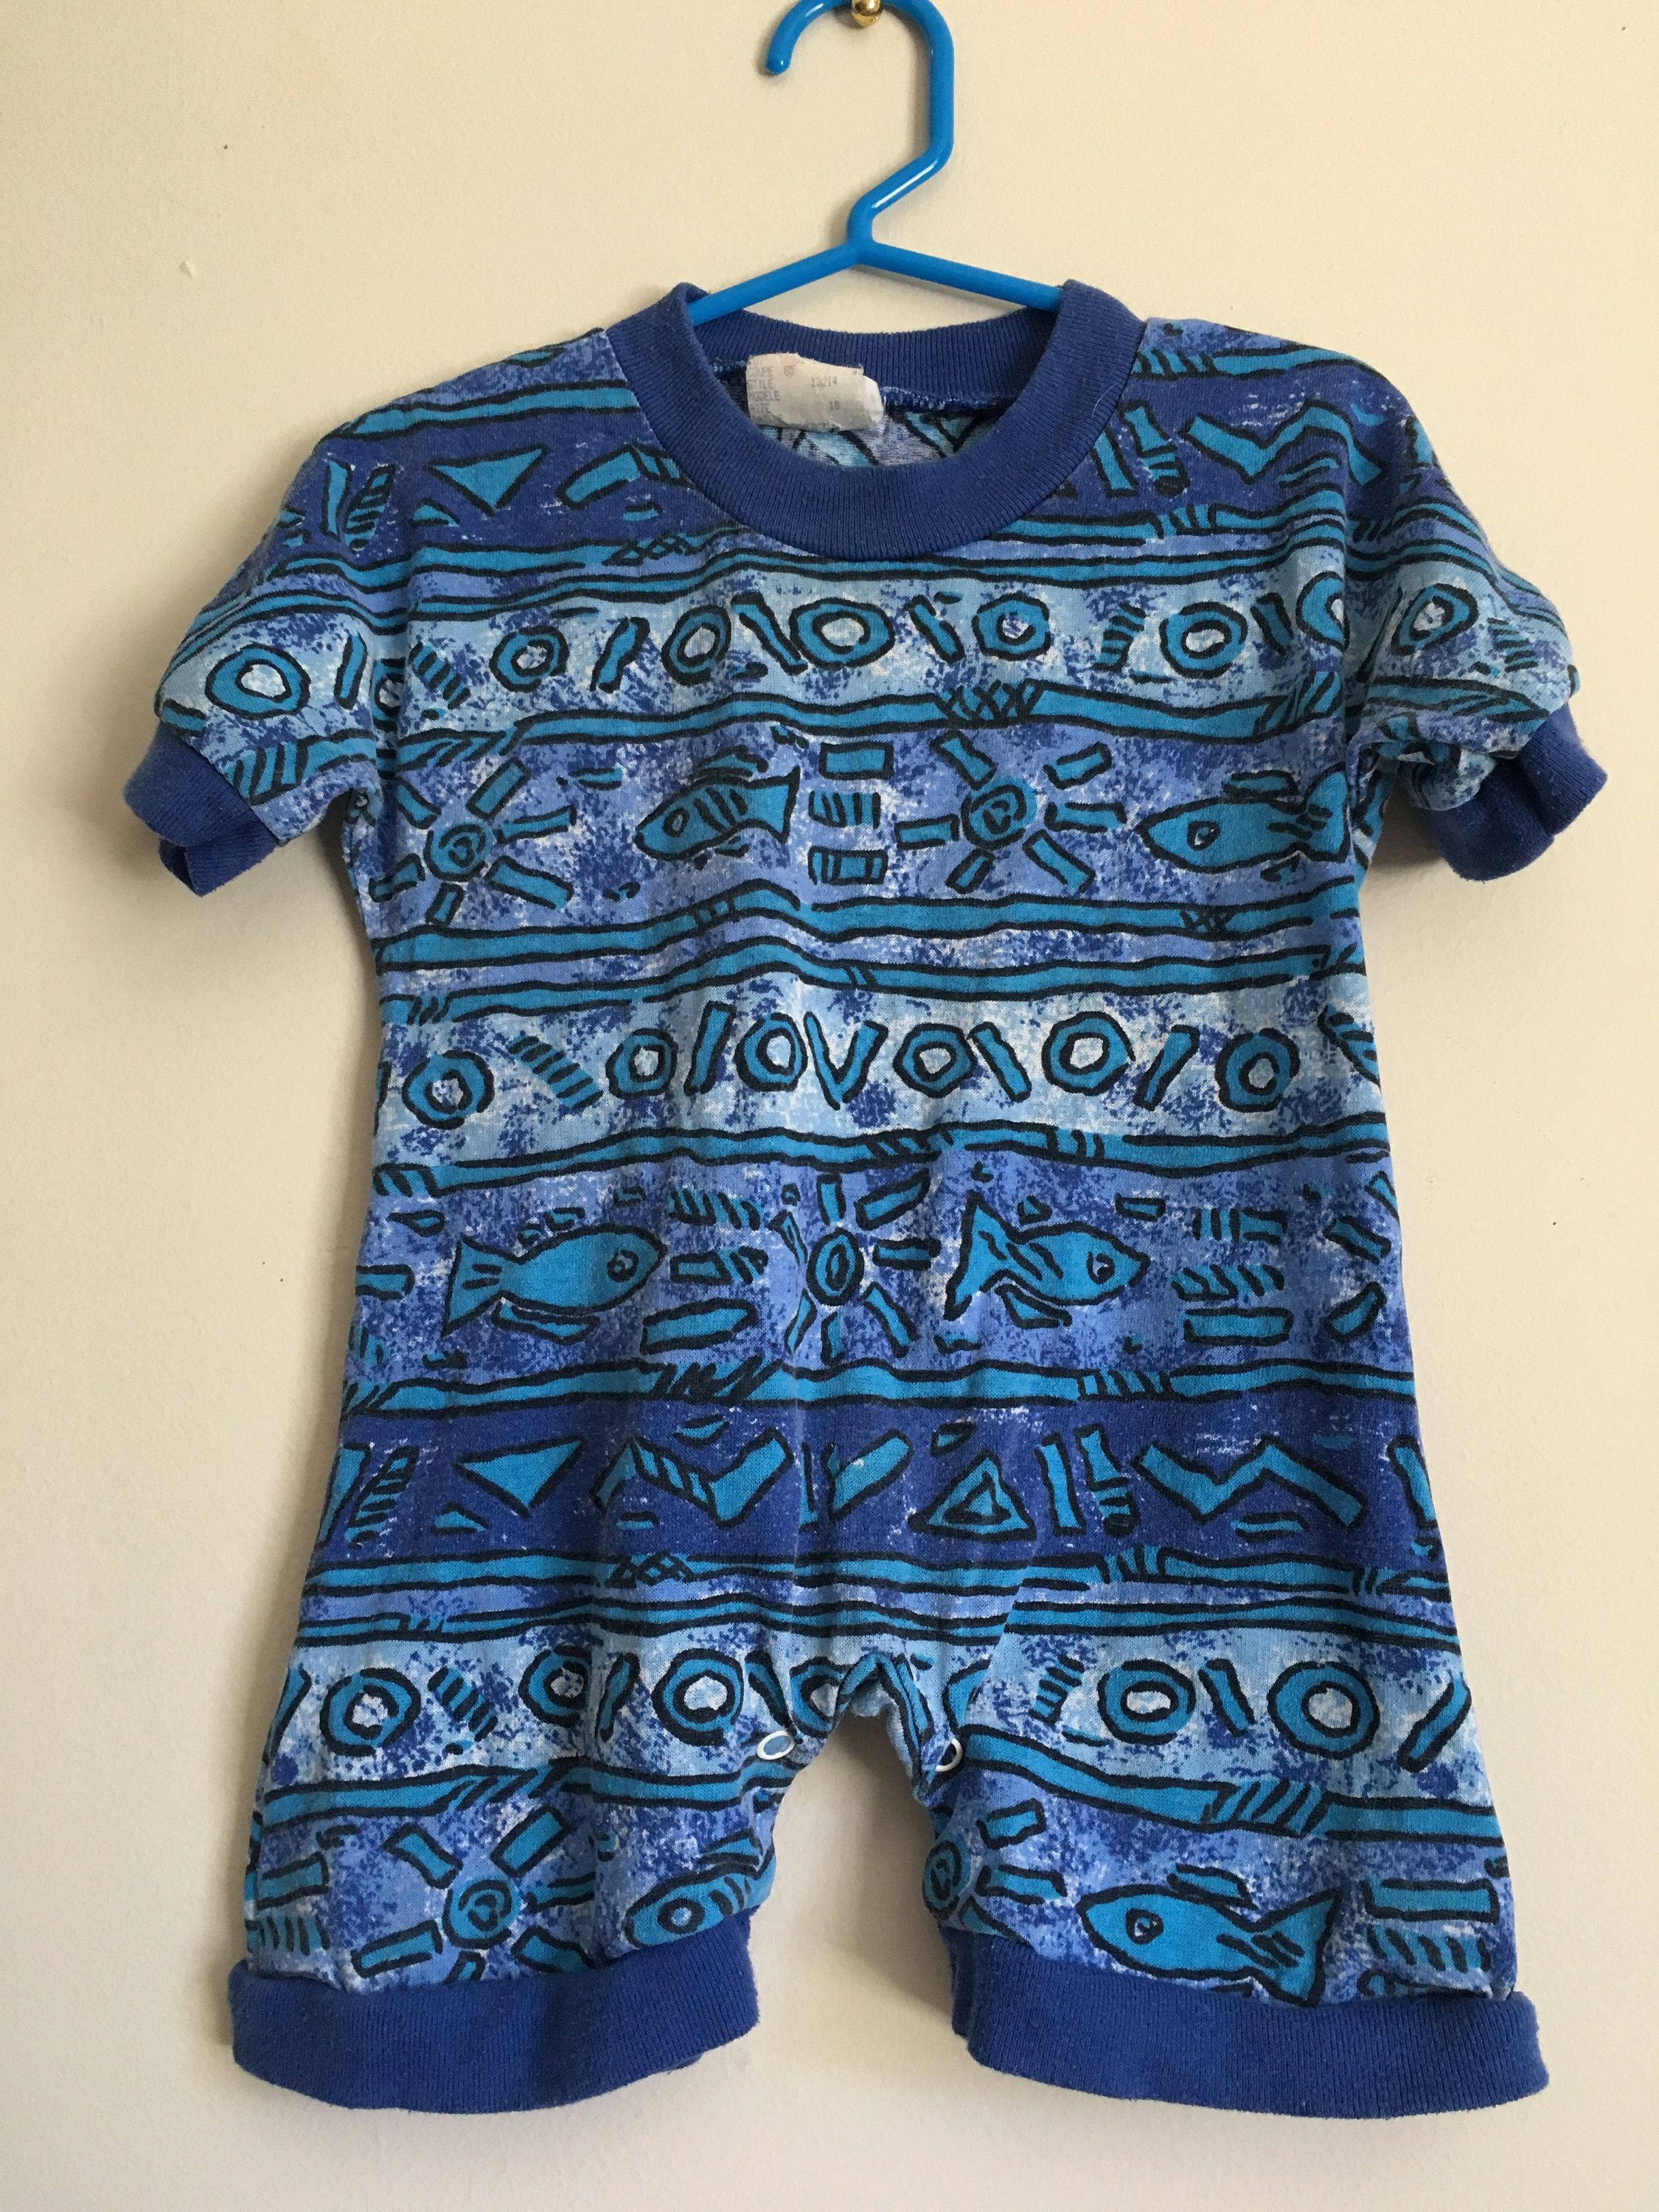 49ab5b8fbc0 Sears Baby 90 s infant boys rad graphic one piece playsuit - Size 18 m -  summer shorts beach romper - surf - neon blue graphic - nineties by ...